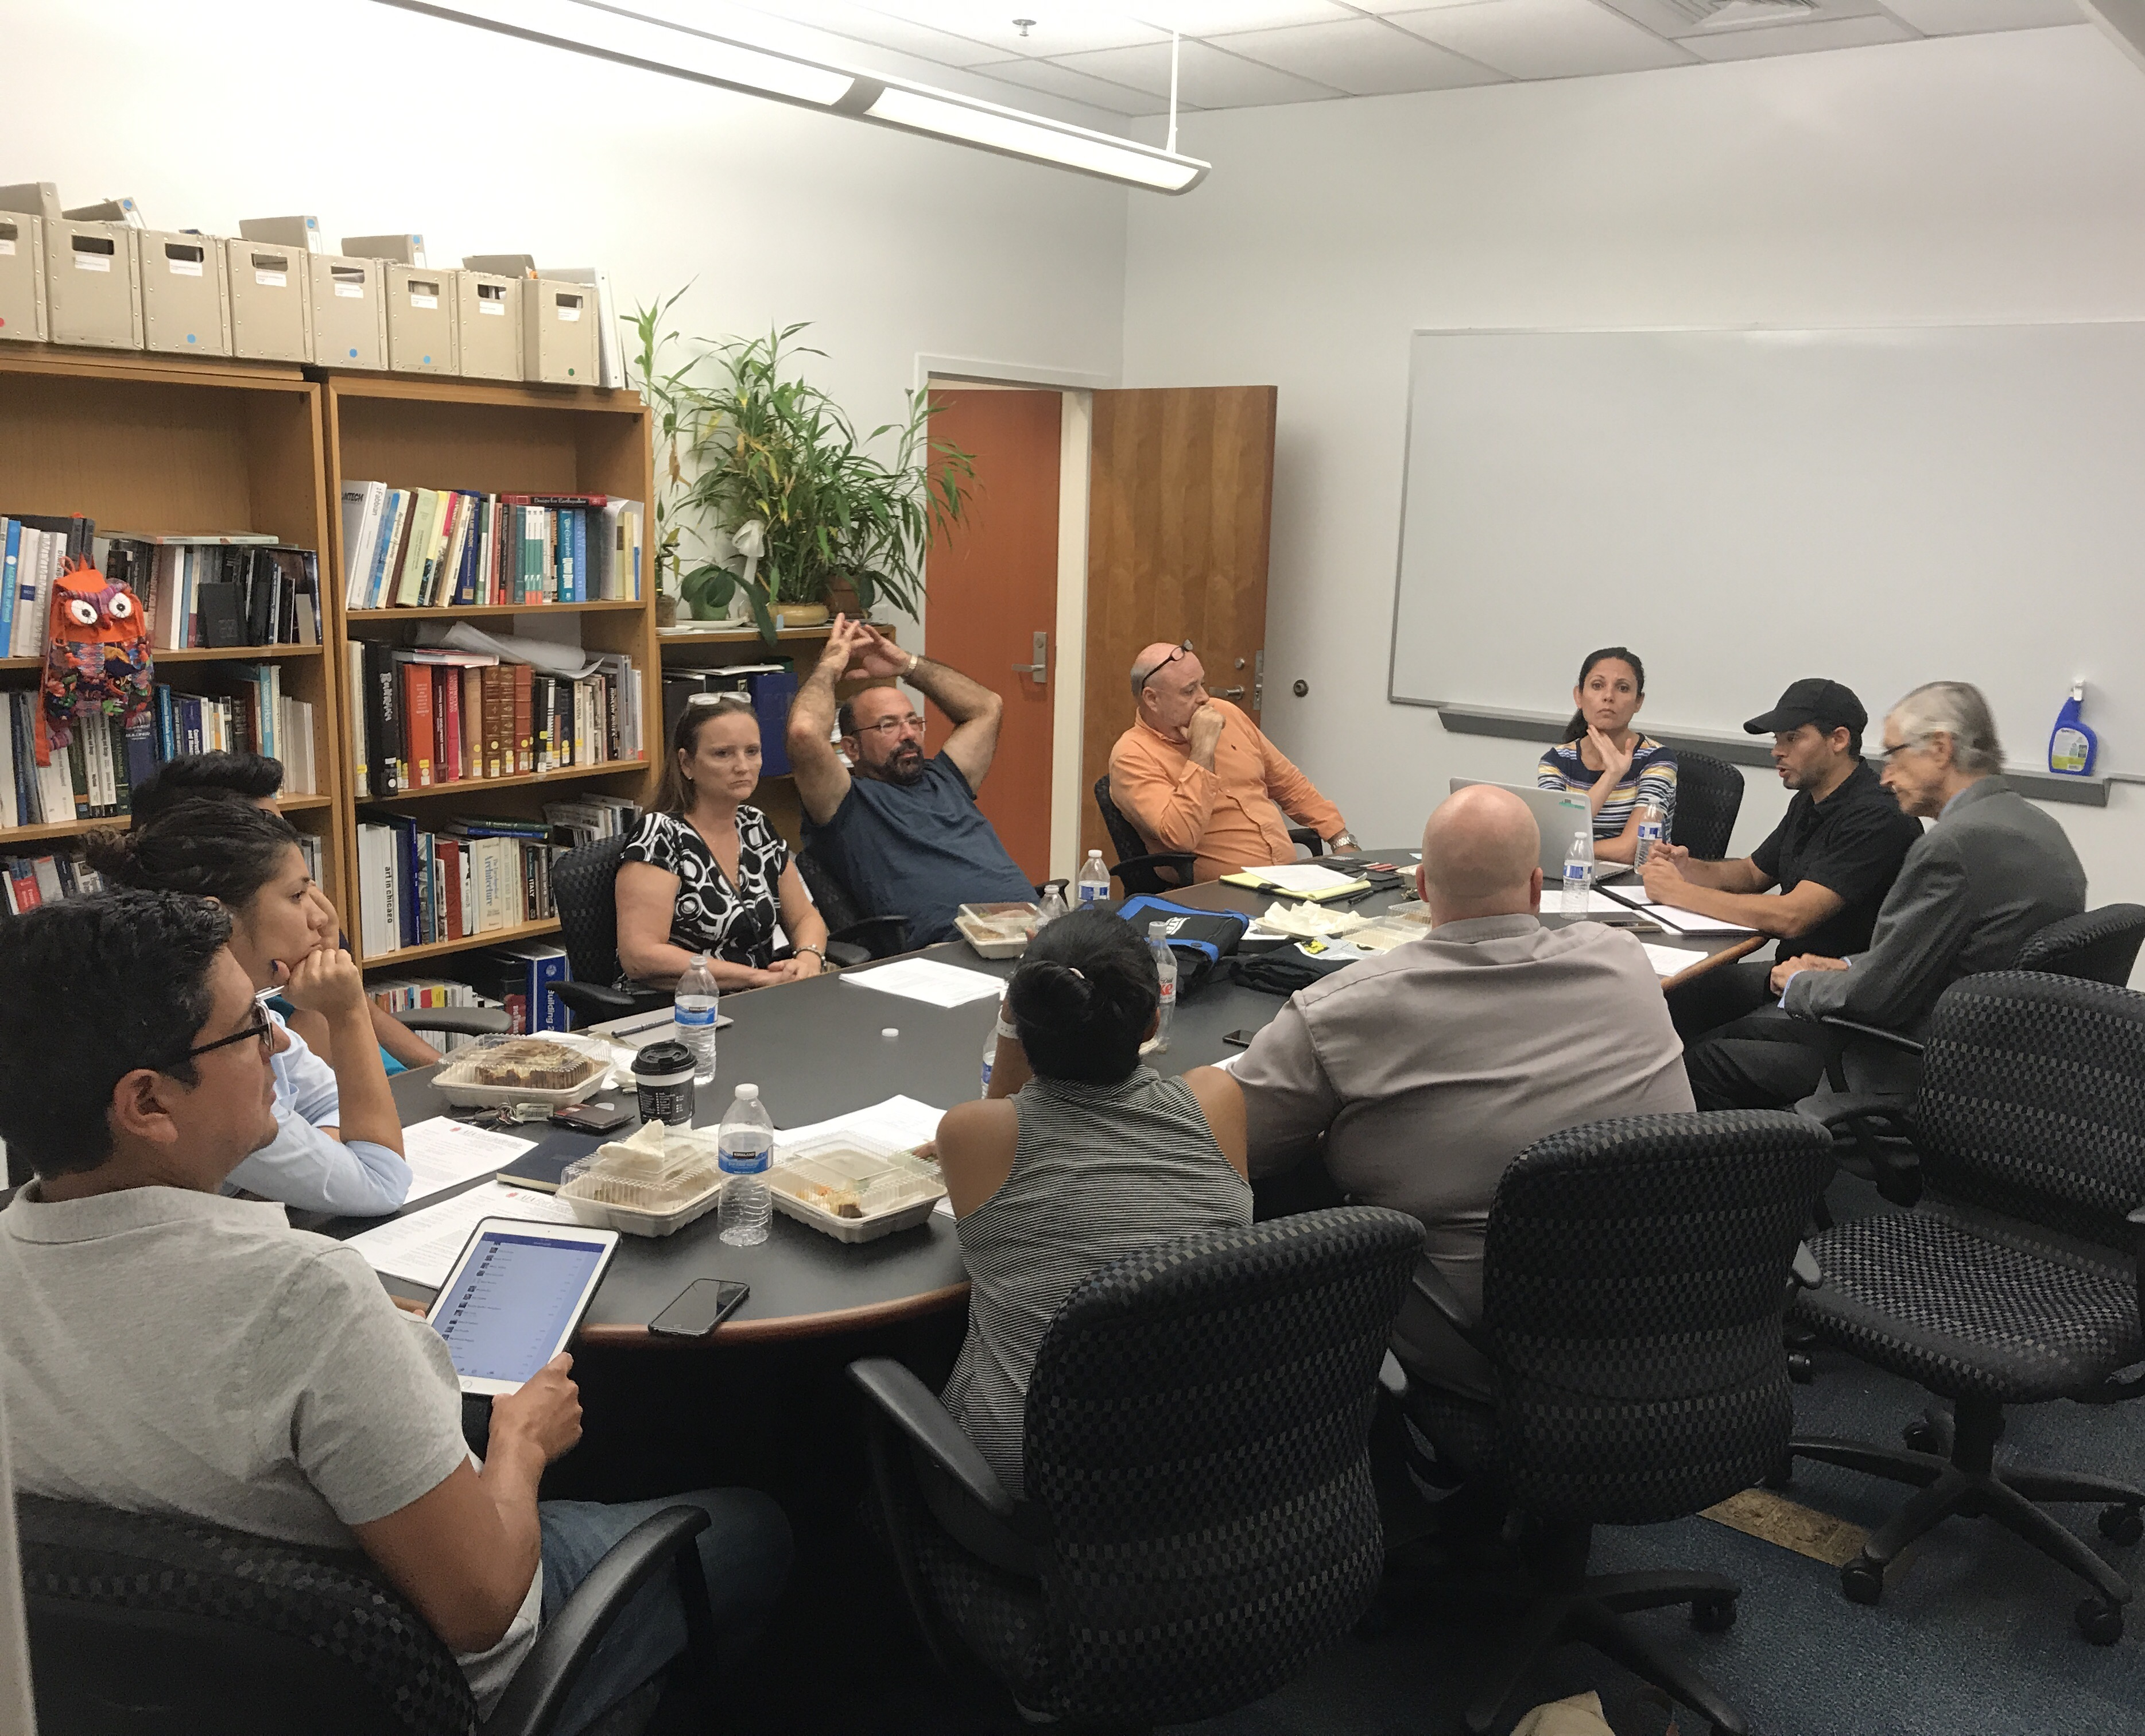 Typical Board Meeting at AIA FTL